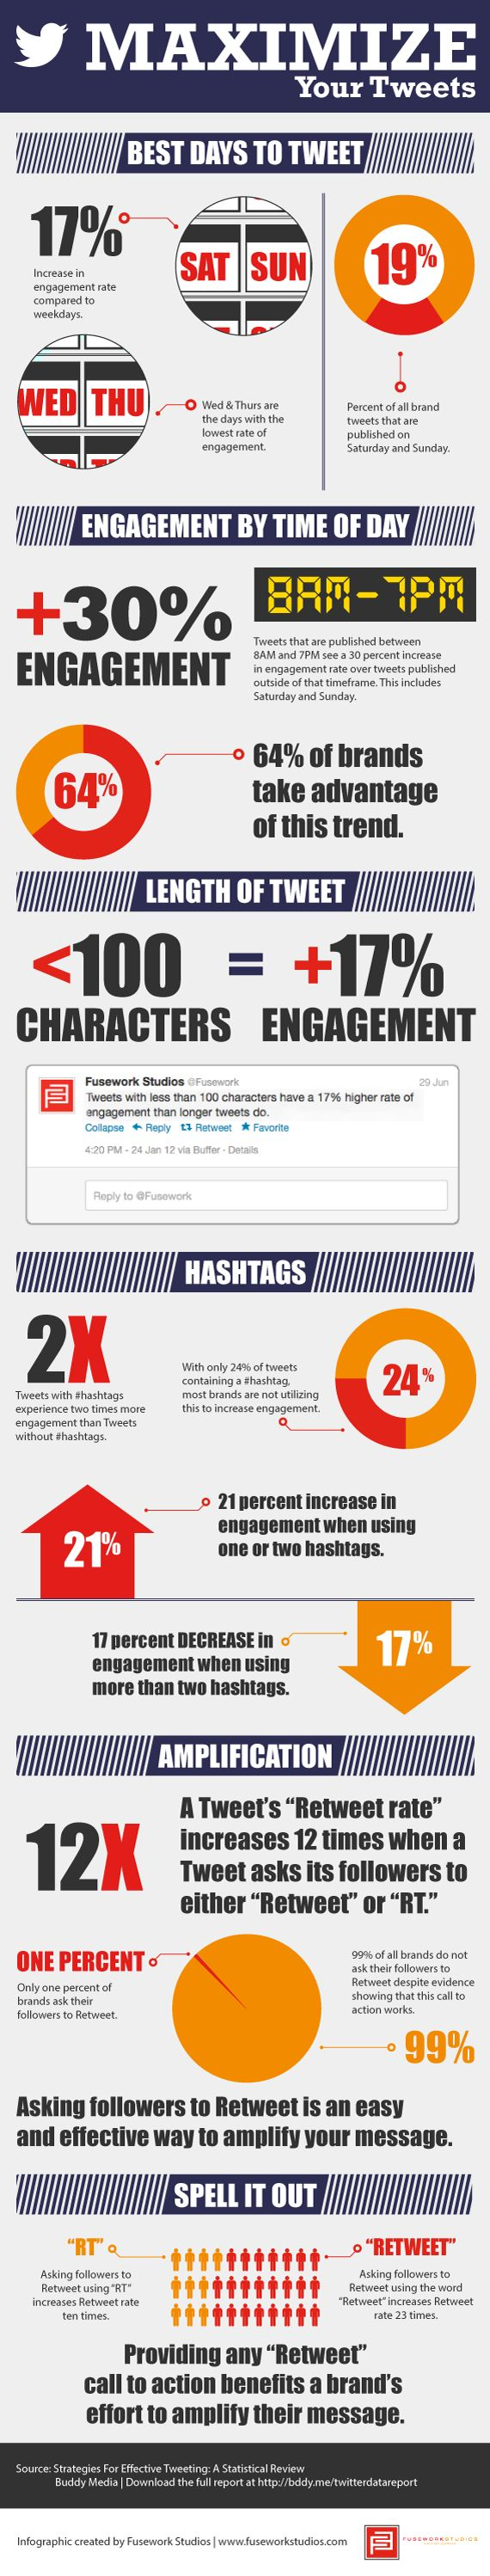 Maximize Your Tweets [INFOGRAP